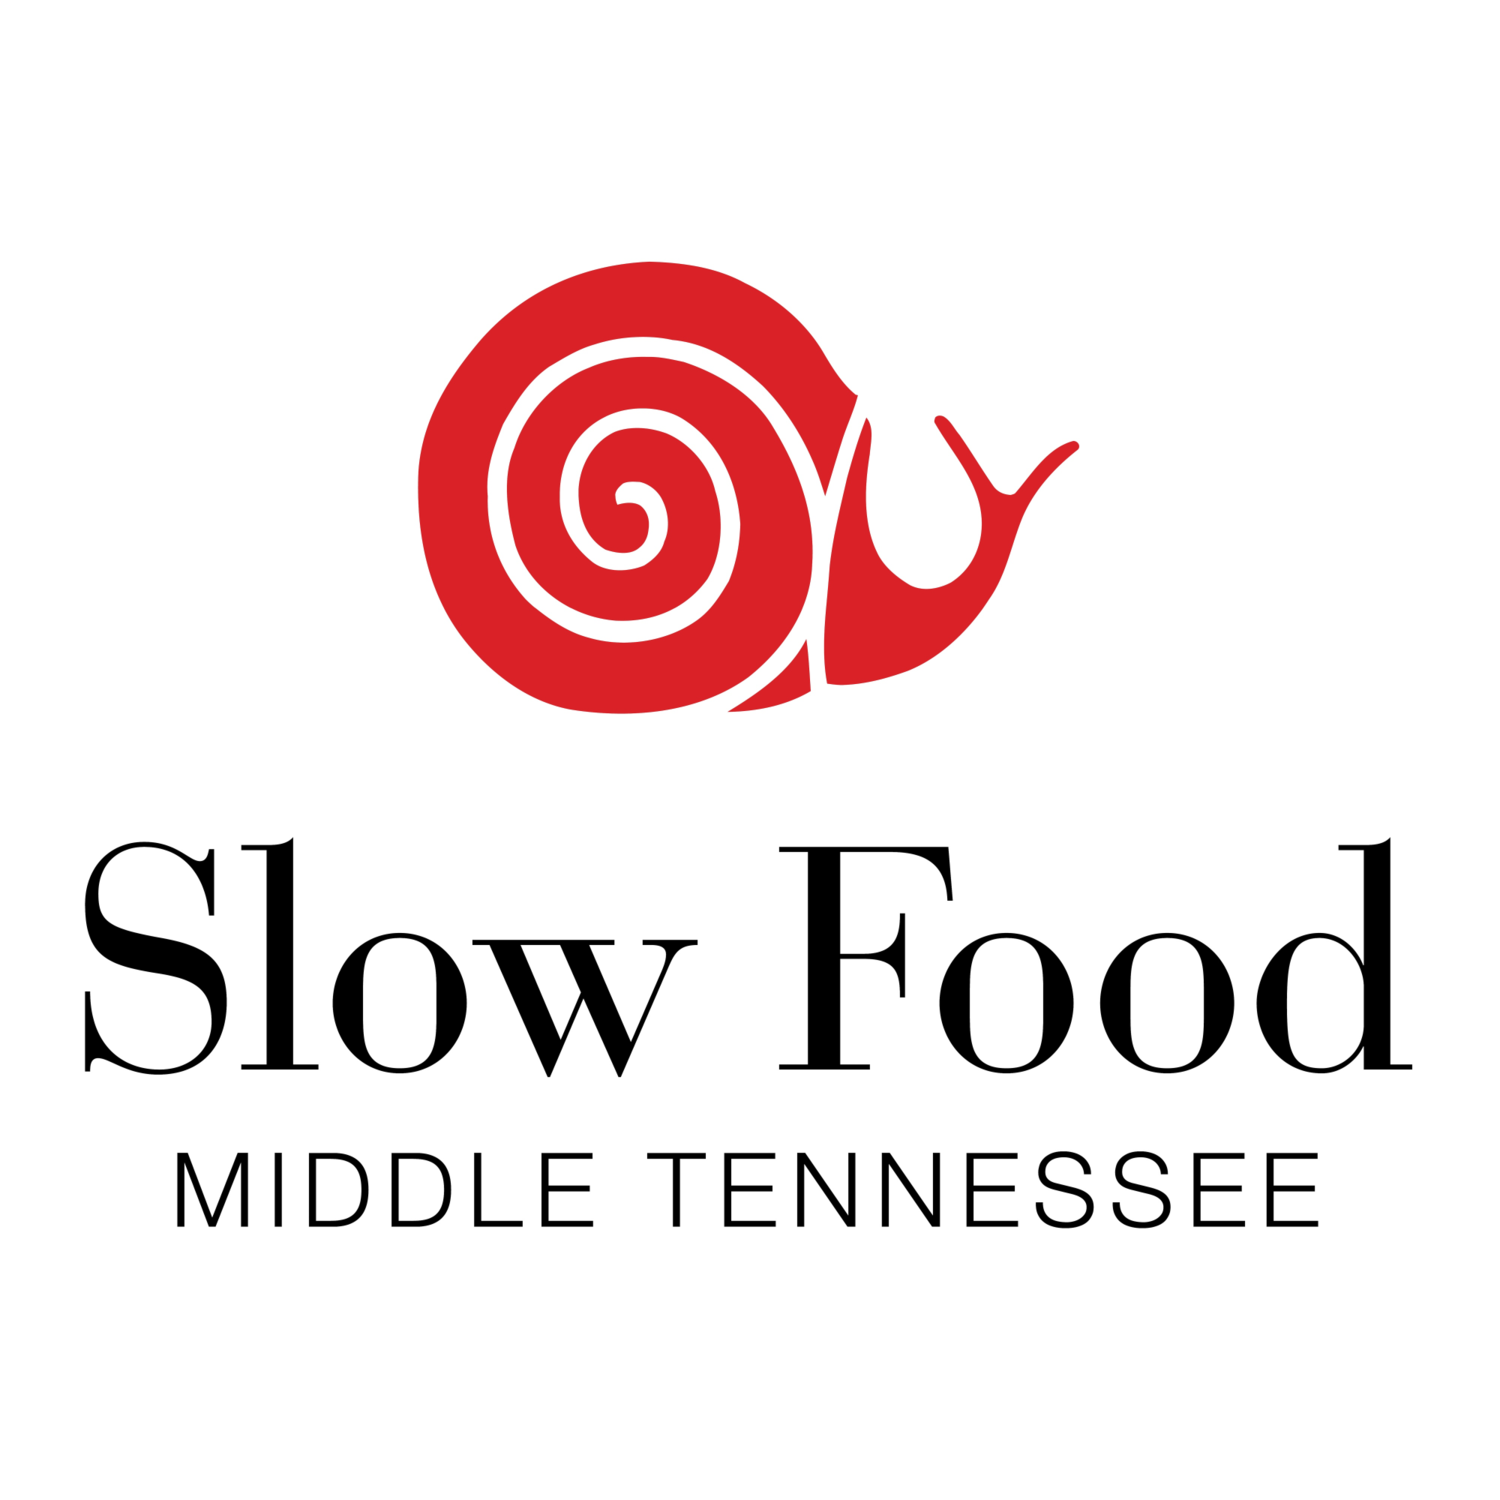 Slow Food Middle Tennessee